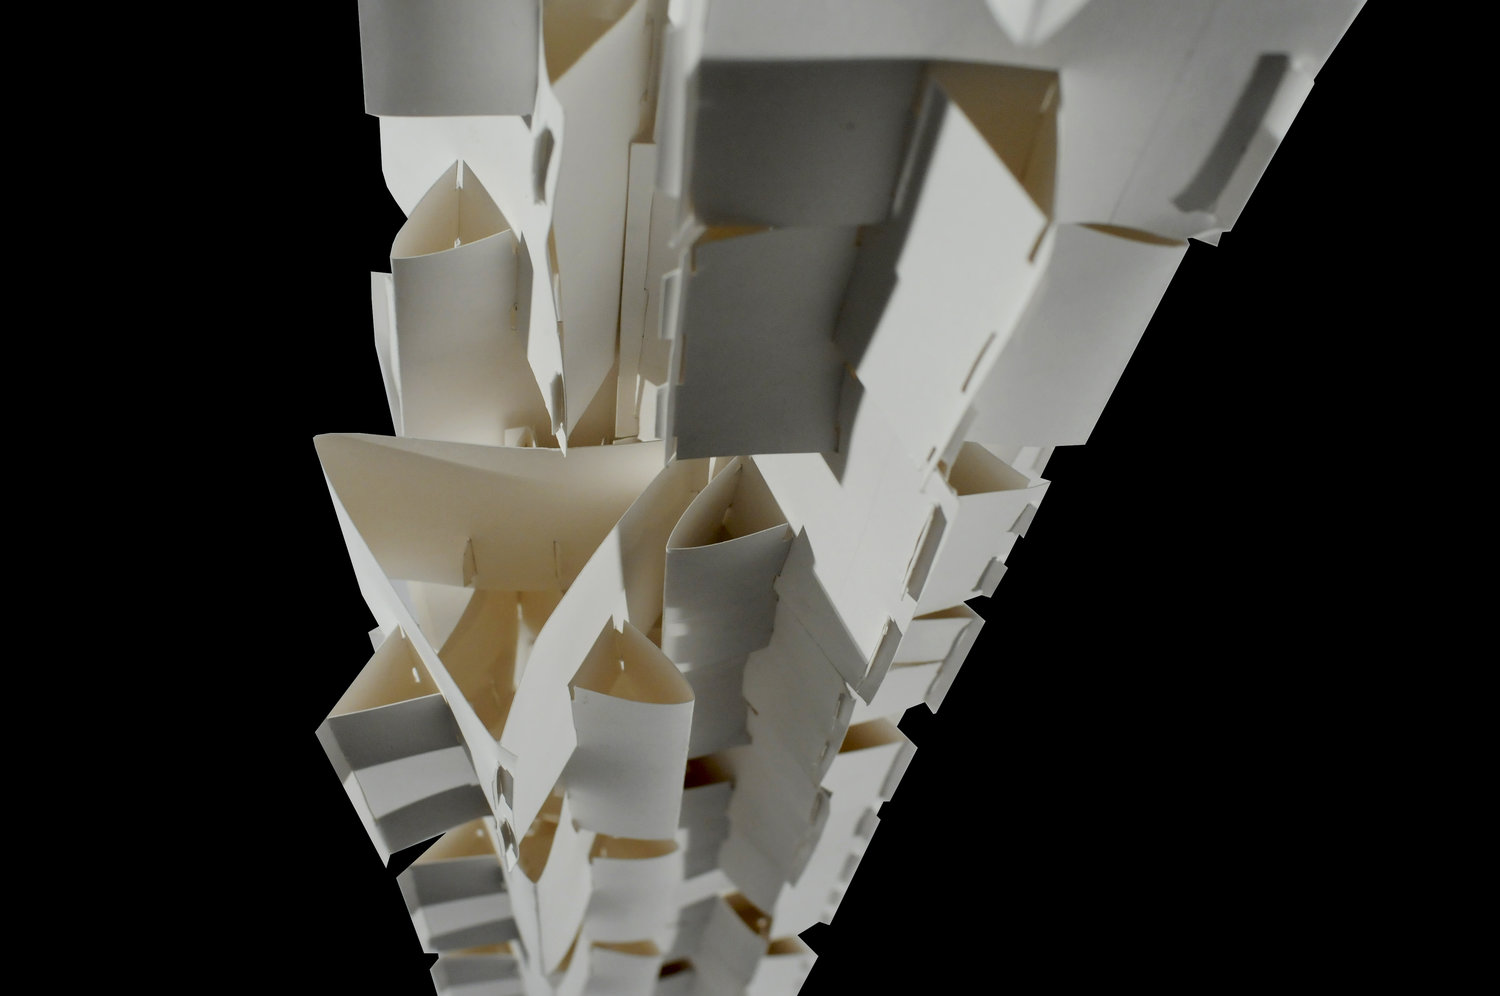 Project I Five Foot Paper Tower Built Of Repeated Units No Adhesives Capable Supporting A 15 Lb Top Load Material